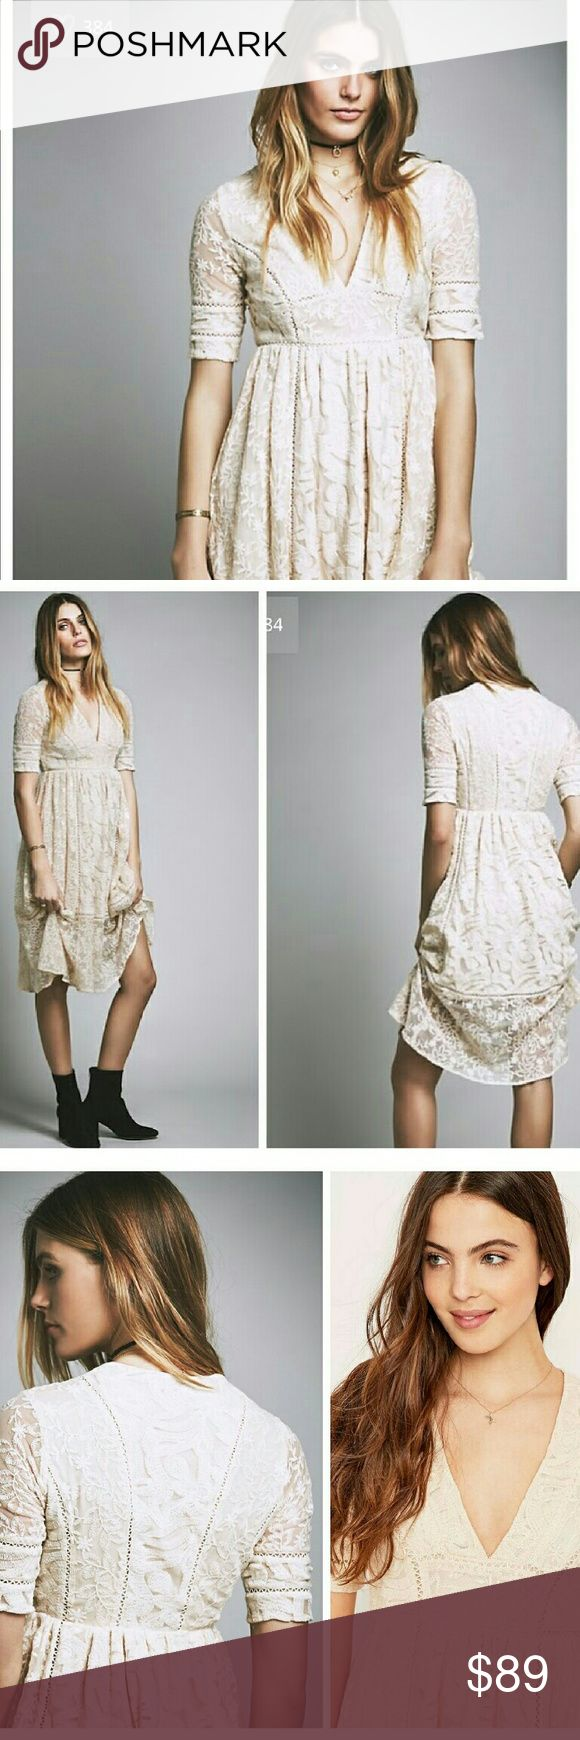 NWT FREE PEOPLE LAUREL LACE MIDI DRESS Sheer lace and crochet panels make up the overlay of a partially lined v-neck midi dress. Elbow length sleeves ,concealed side zip closure, all over embroidered mesh lace construction, crochet knit panel inserts. Incredibly romantic Boho Style! Almond color Free People Dresses Midi